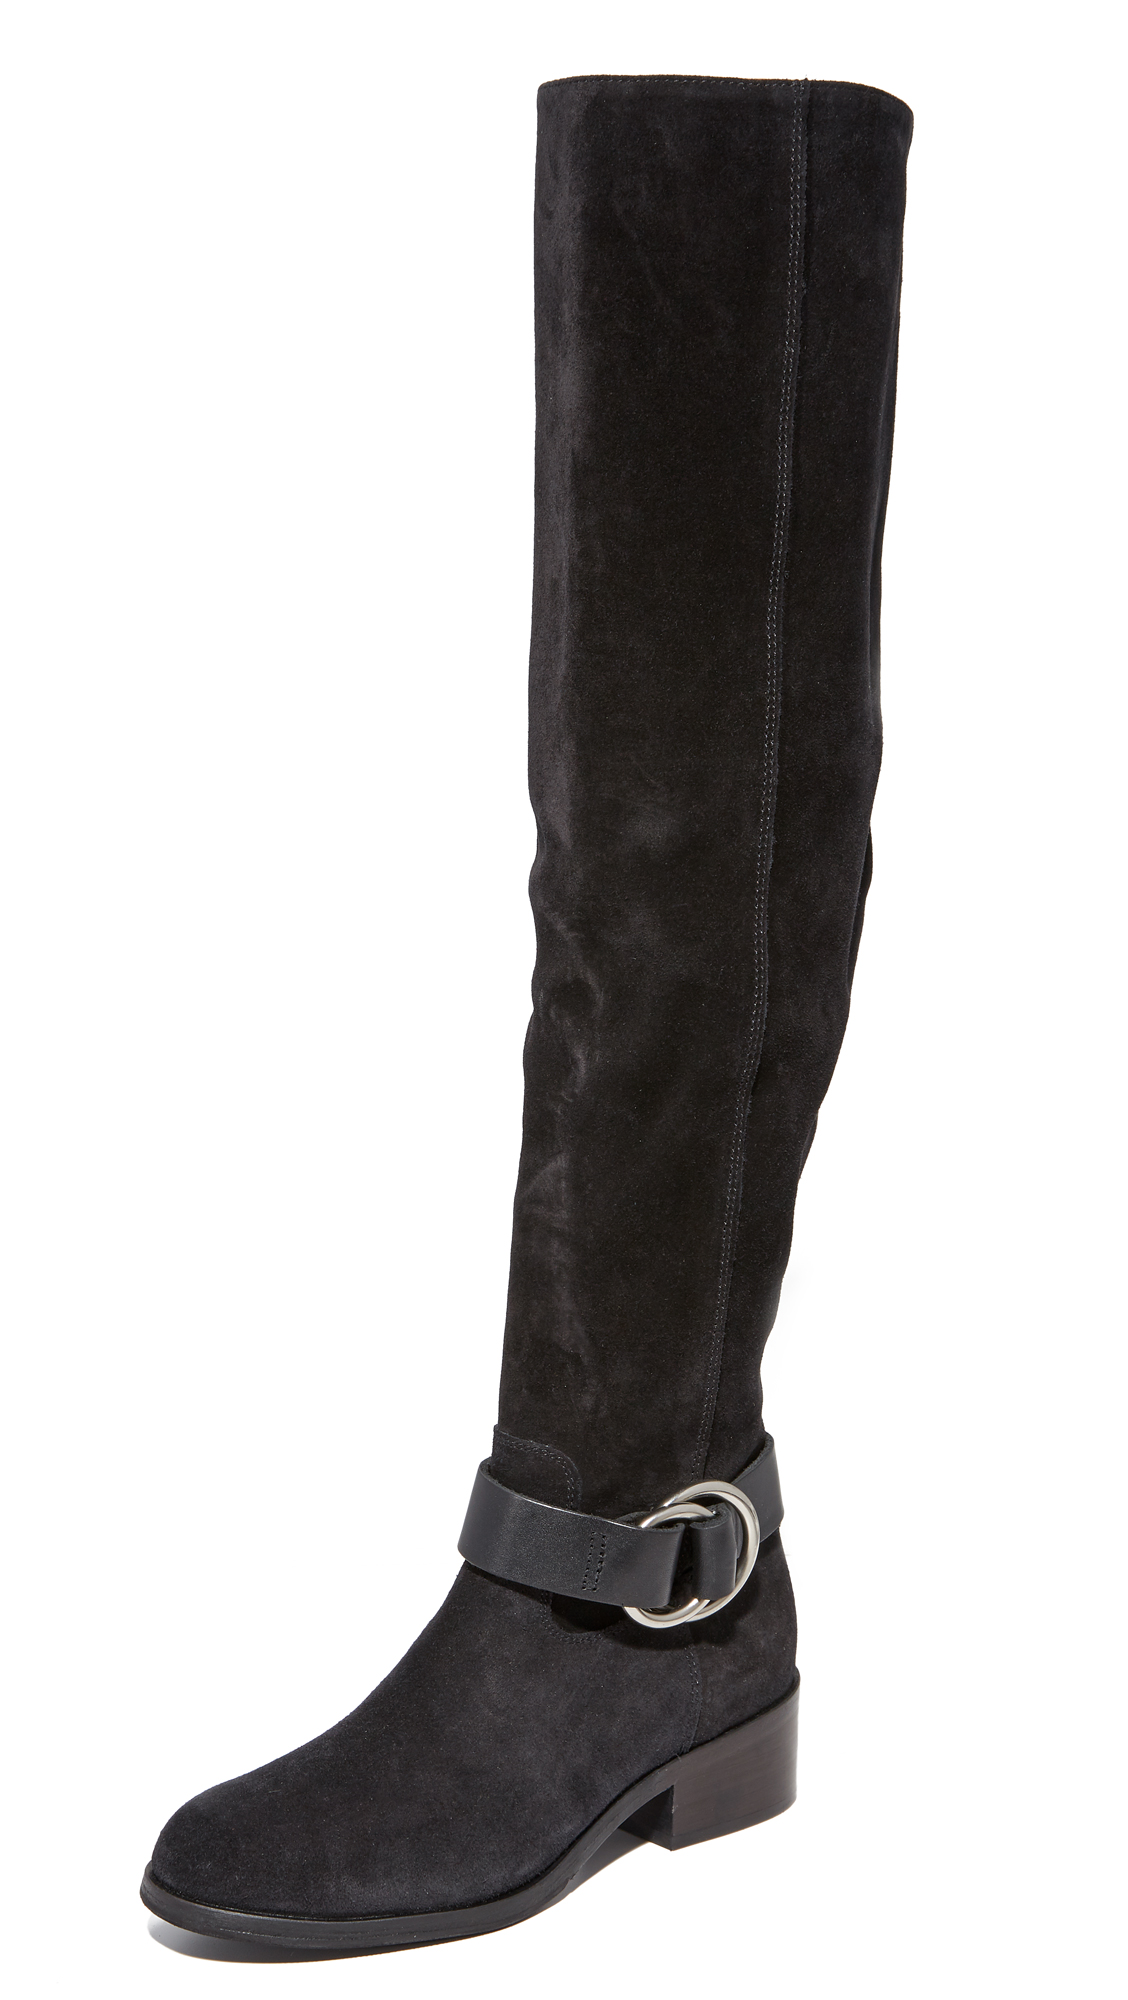 Frye Kristen Harness Over the Knee Boots - Black